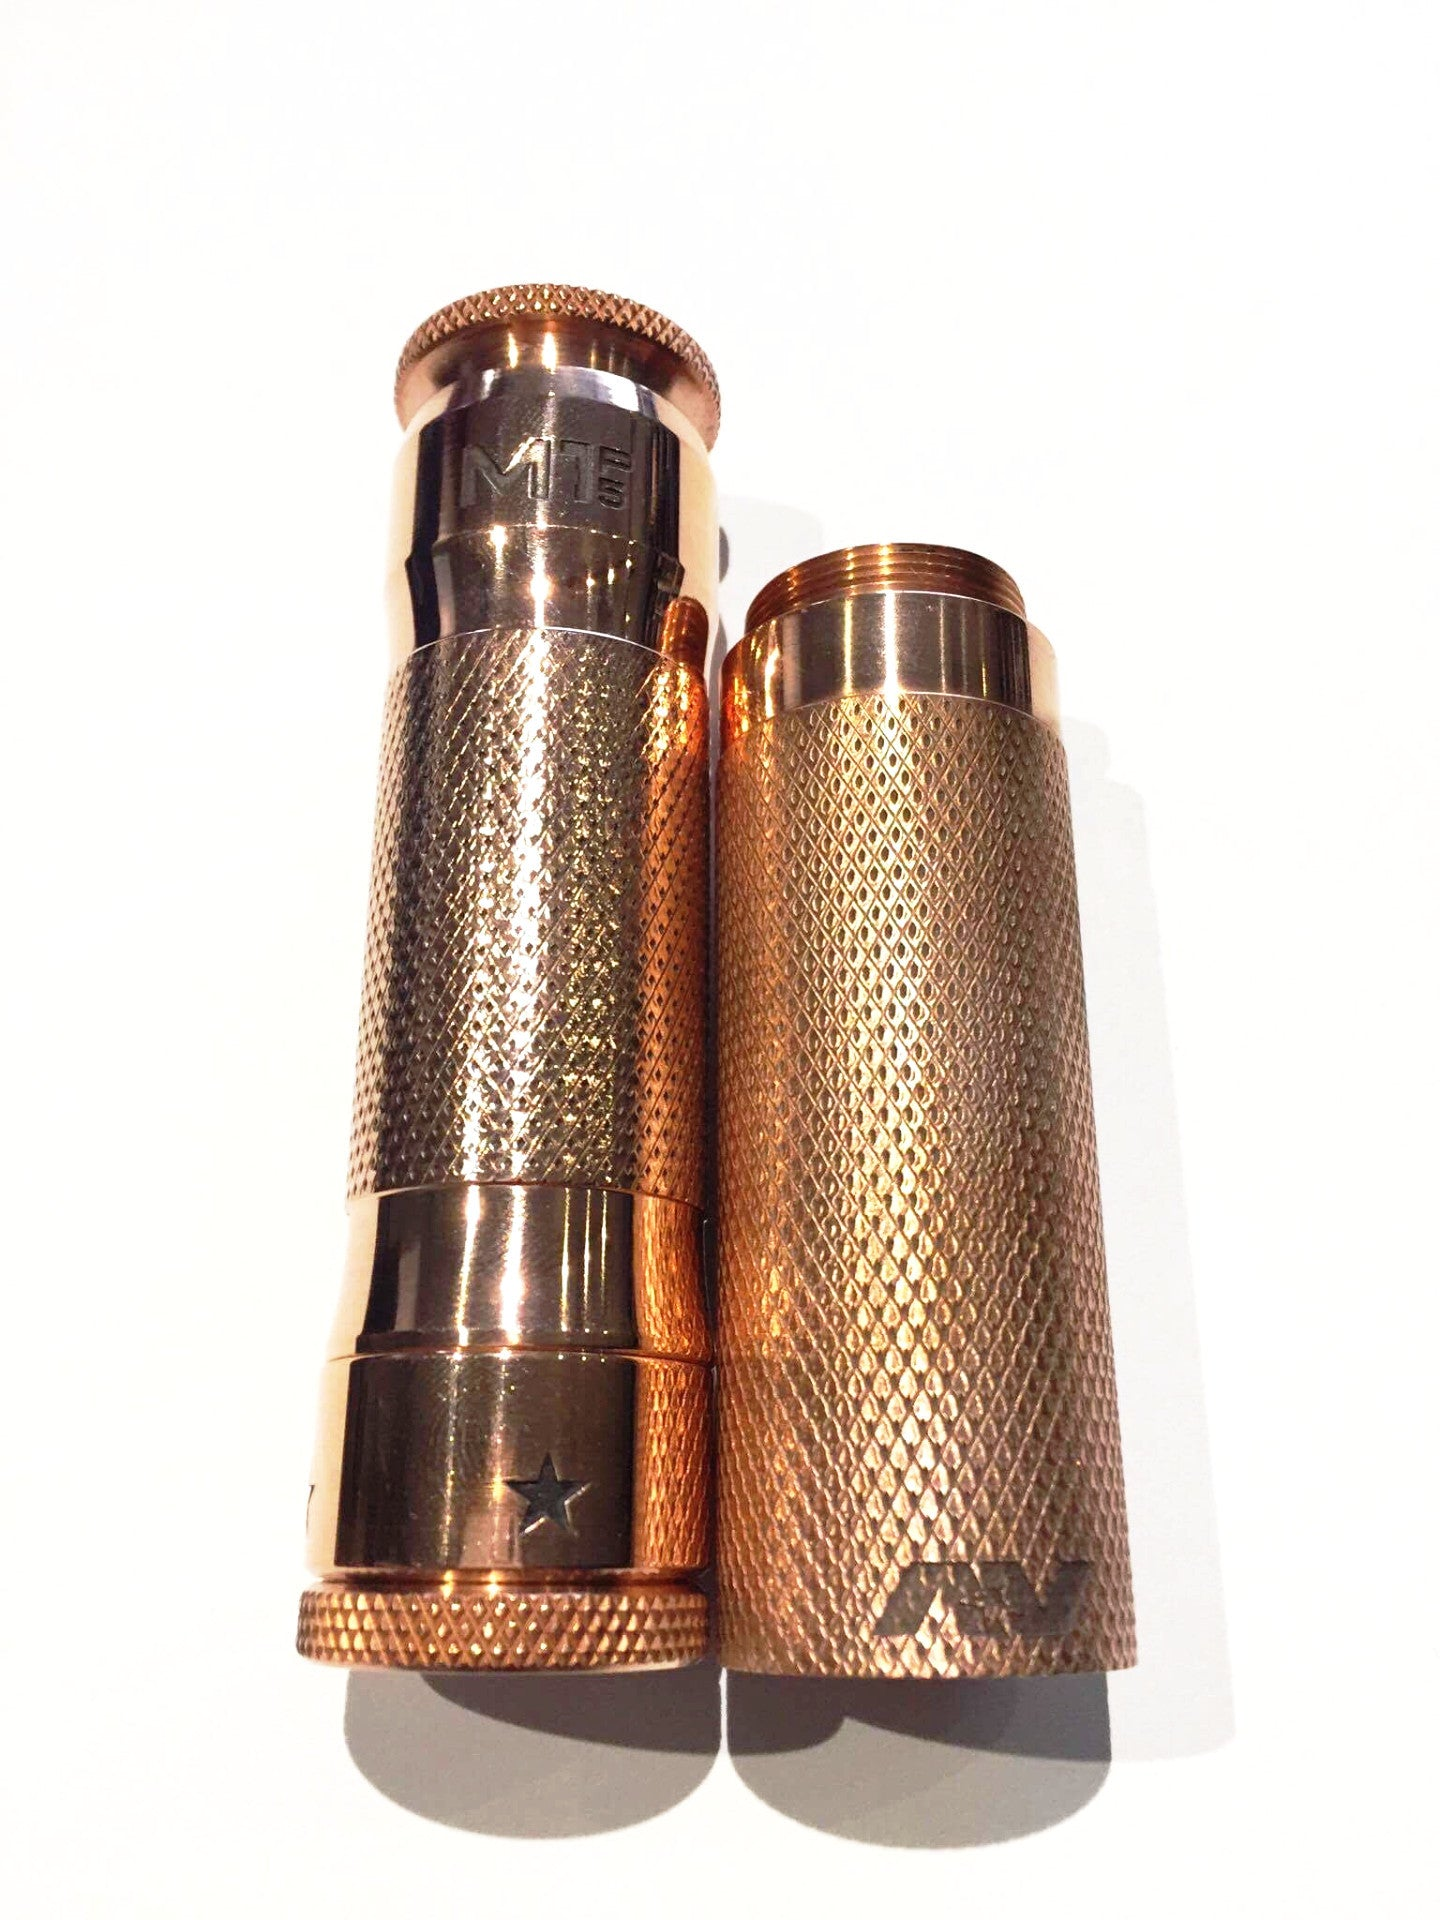 Copper M1P5 Mech Mod w. Stack Adapter - Avid Lyfe - IN2VAPES